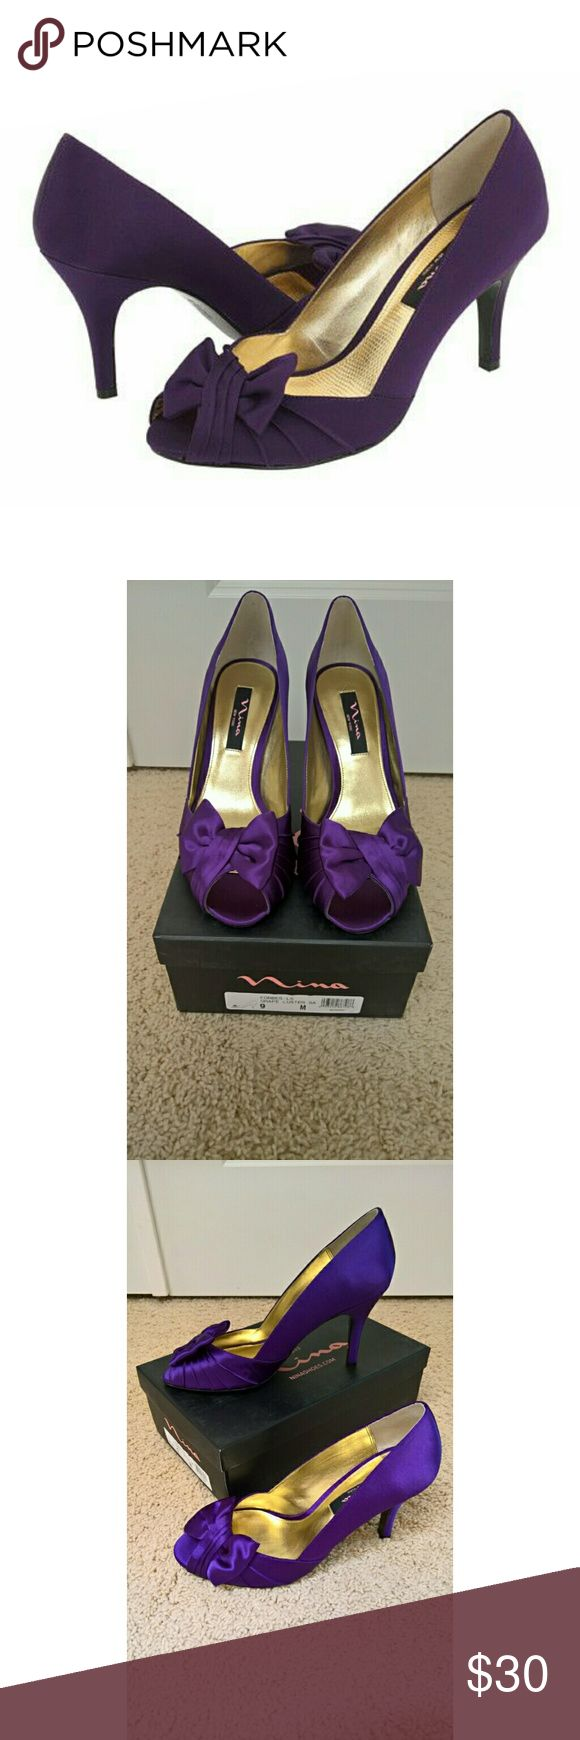 "NWT Nina Forbes Satin Pumps New with tags (never worn). The Forbes Peep-Toe Pump in Grape Luster gives femininity a new meaning. This is the perfect satin shoe for your next special occasion. Wear with an elegant wrap dress and your favorite necklace to make a statement of sheer elegance. Perfect For: Brides, Brides Maids, Guests, Formals & Proms. Features 3"" heel, satin bow, pleated vamp, satin upper and leather sole. Comes from a smoke-free and pet-free home. Nina Shoes Heels"